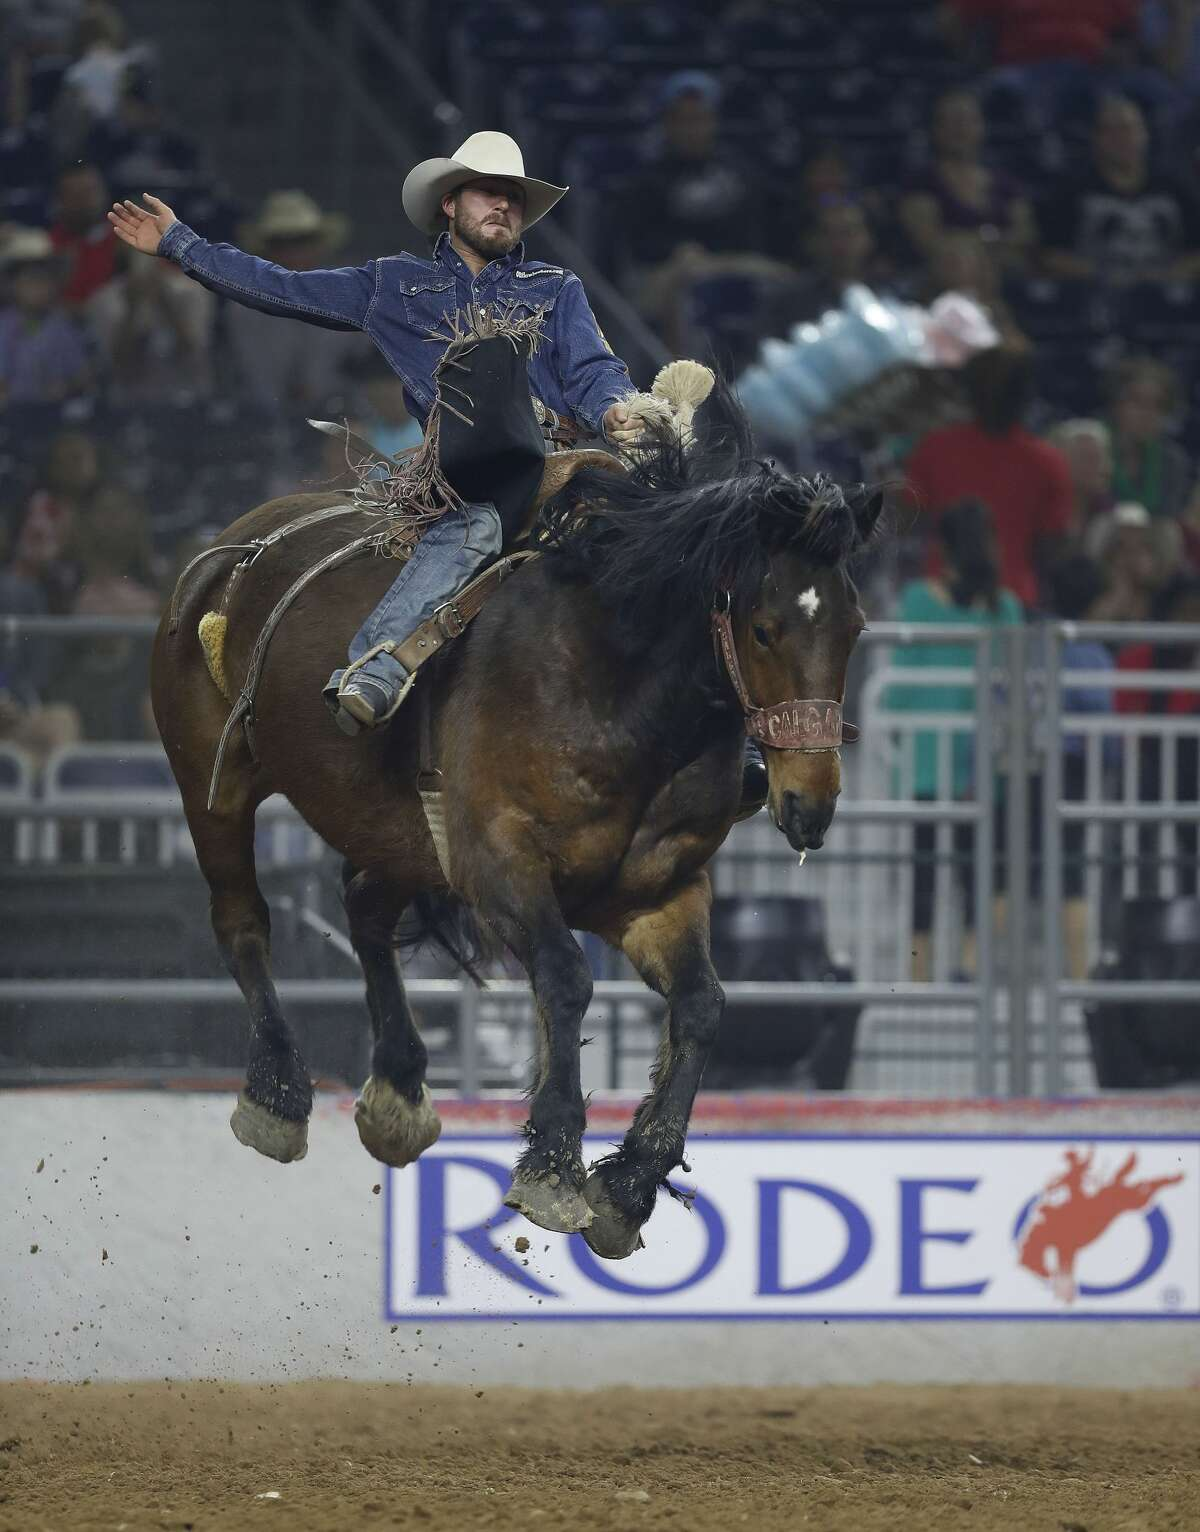 Cort Scheer rides Urgent Delivery in the saddle bronc competition during the Super Series IV, round 2, at NRG Stadium, Friday, March 17, 2017, at the Houston Livestock Show and Rodeo, in Houston. ( Karen Warren / Houston Chronicle )